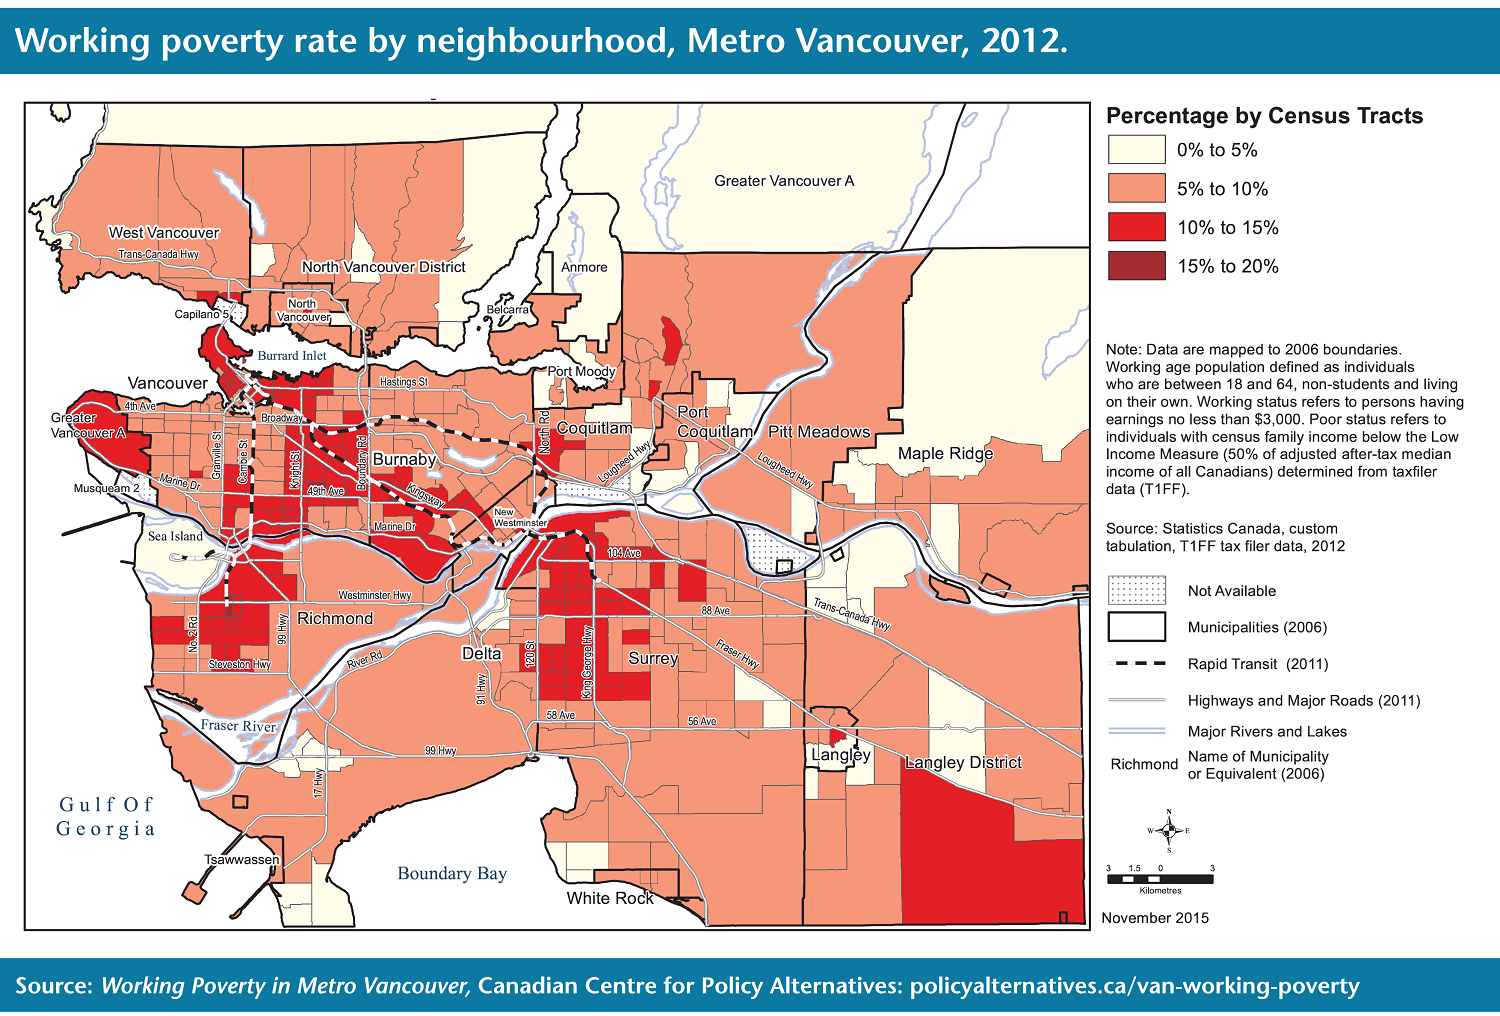 map2-workingPovertyRate2012-ccpa_0